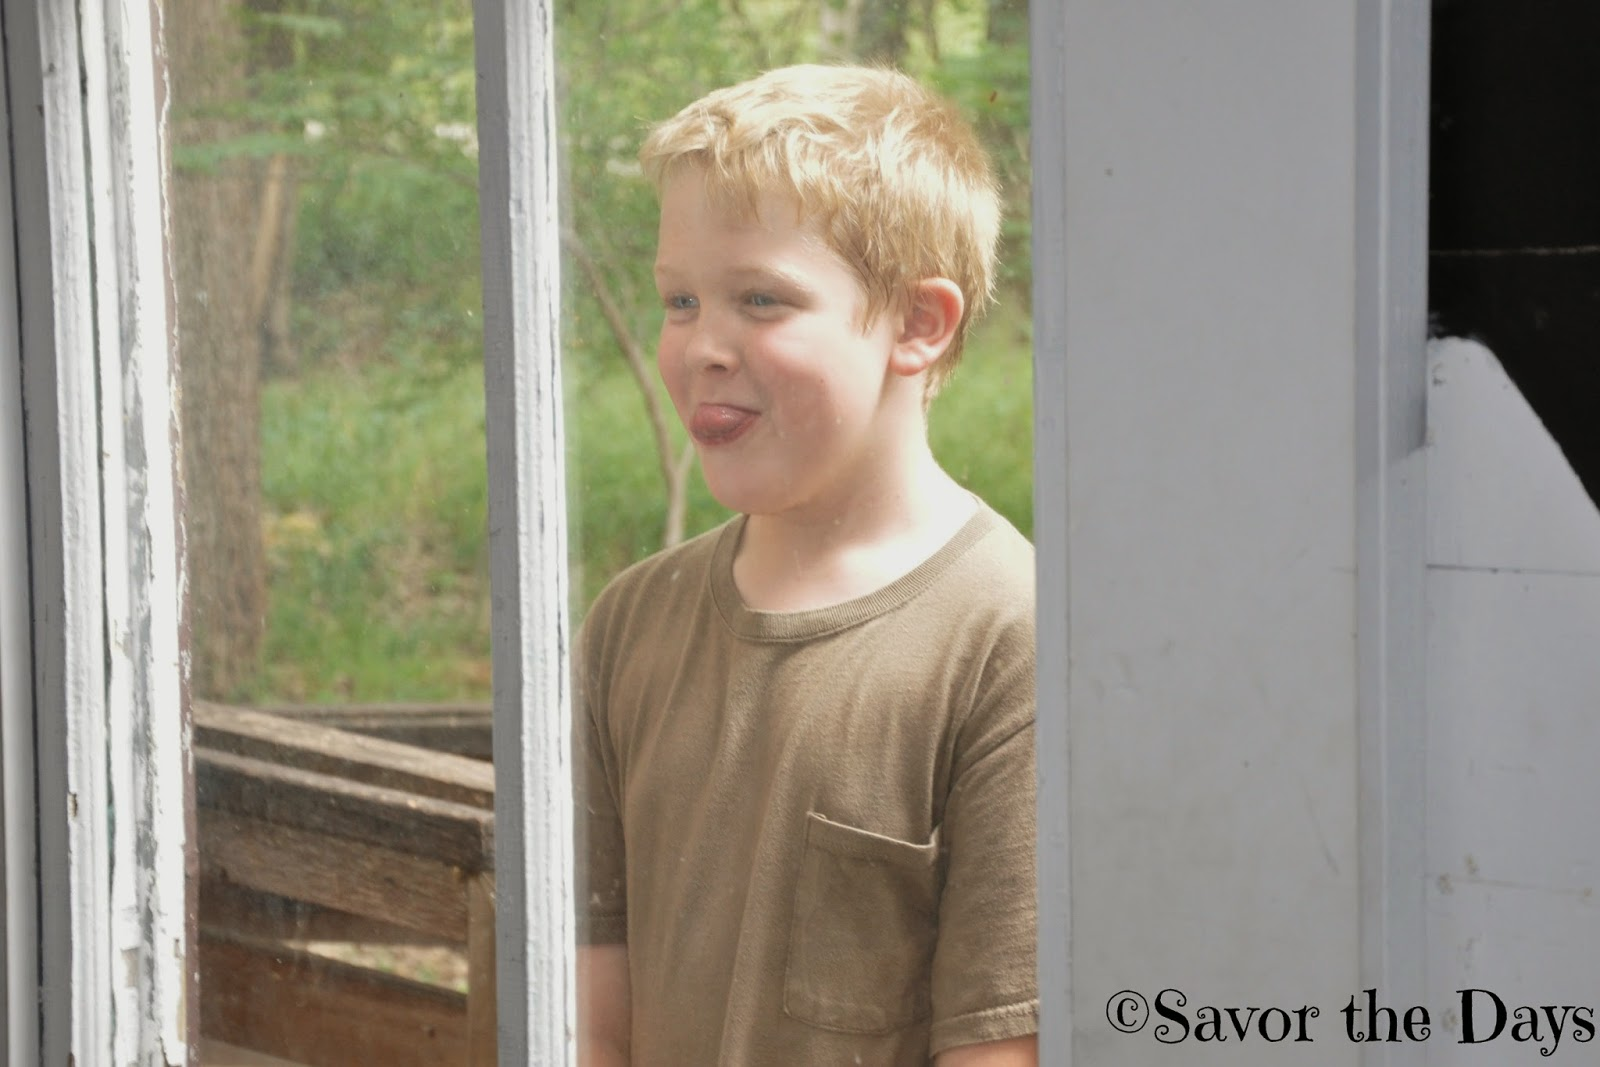 Kid taunting through window